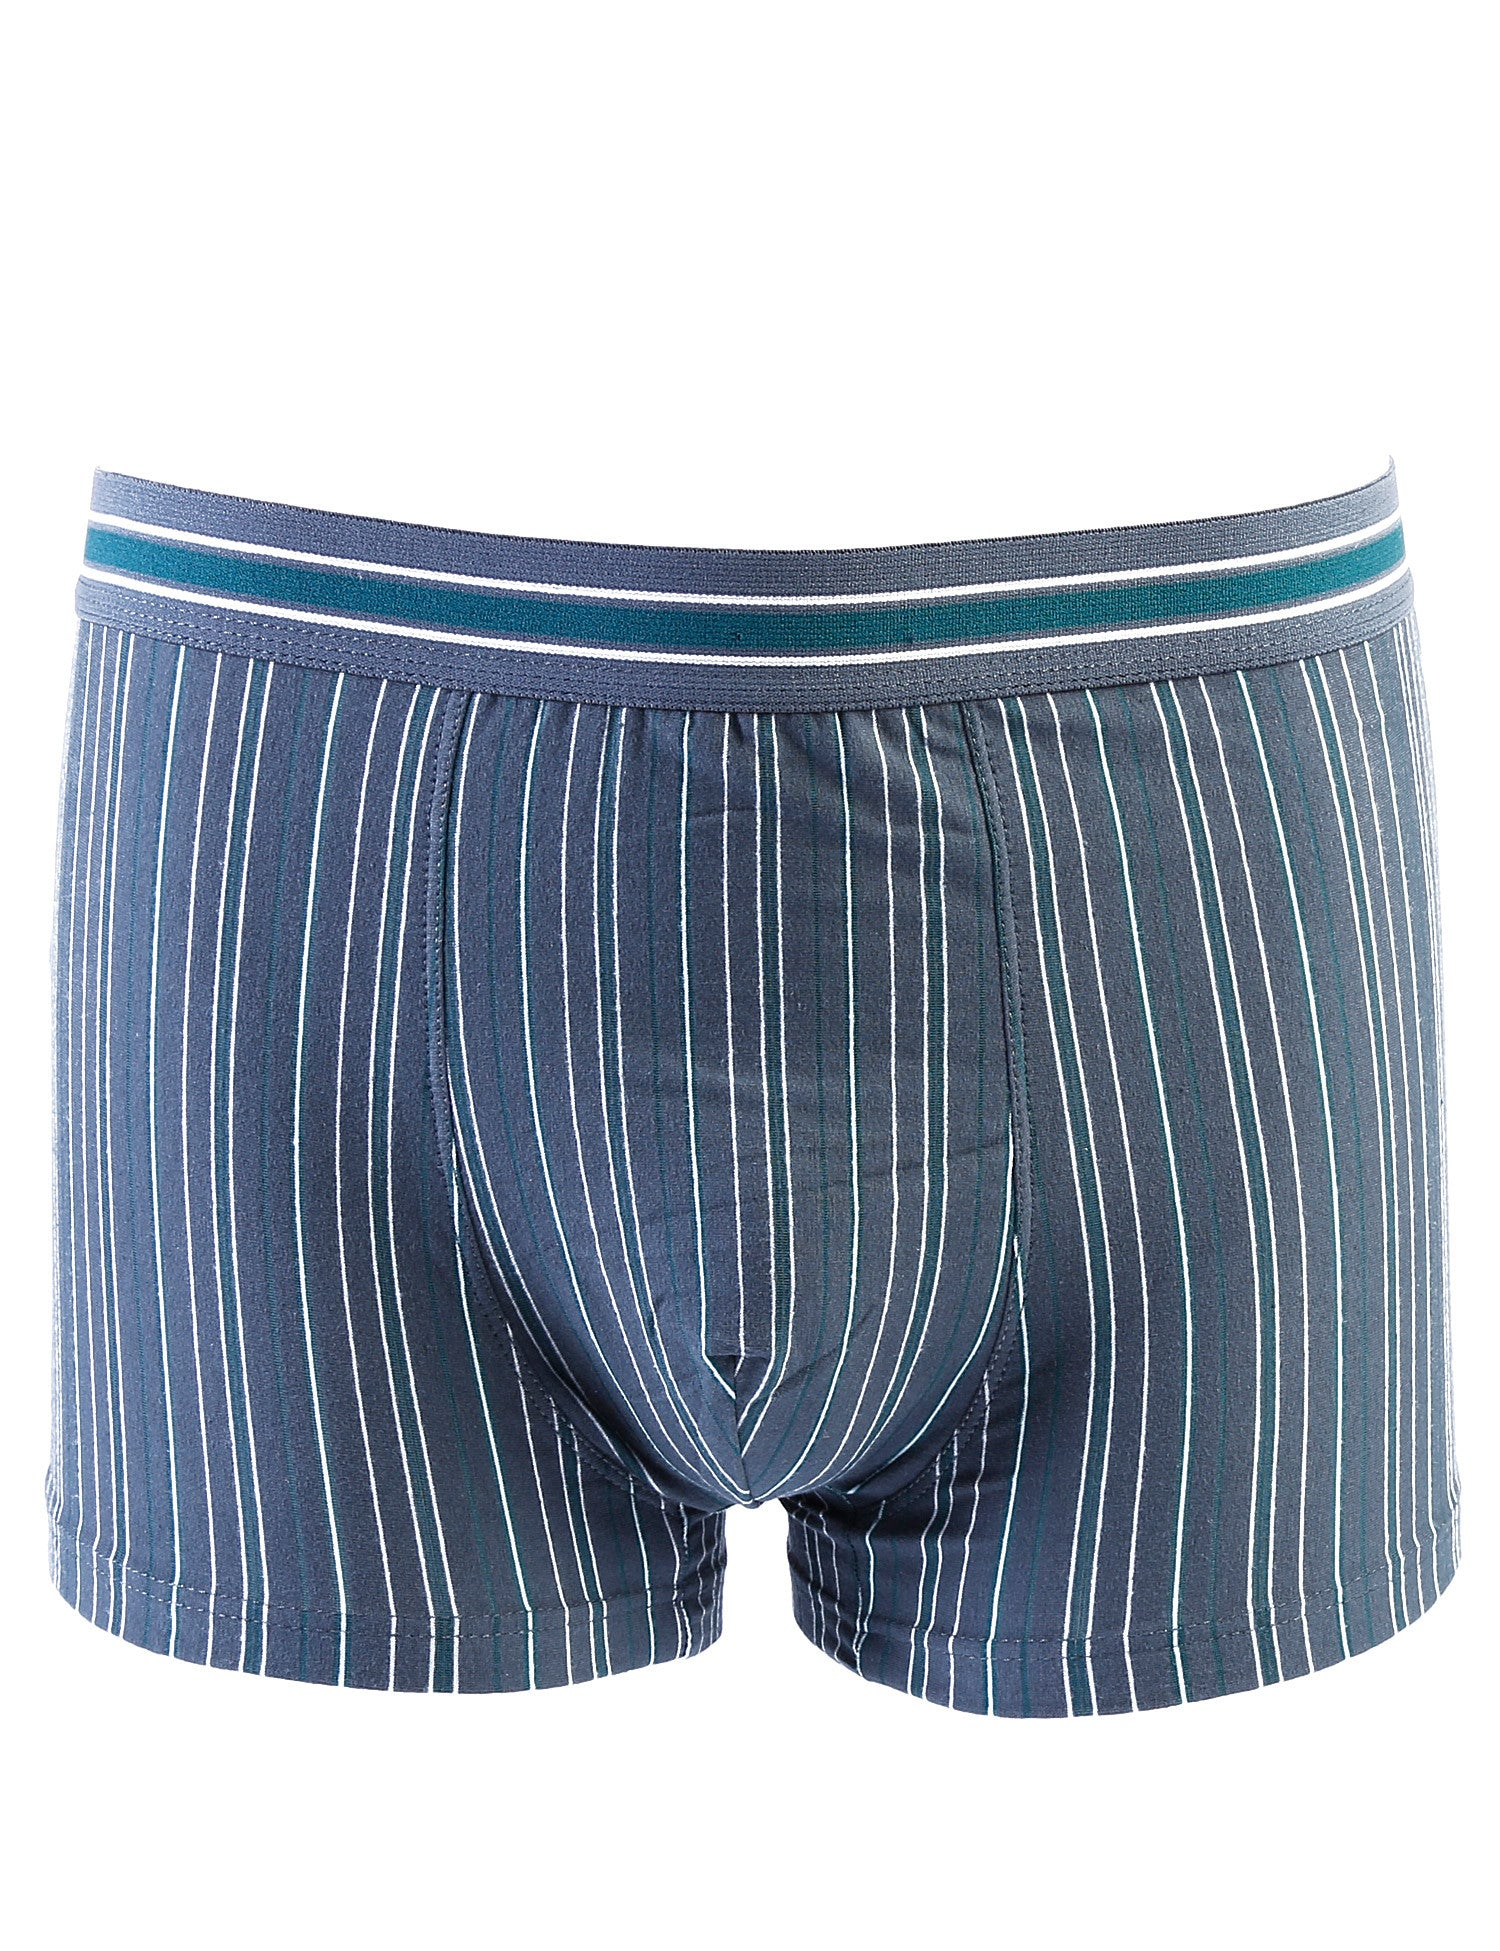 Crazyman Boxers 6015 Green